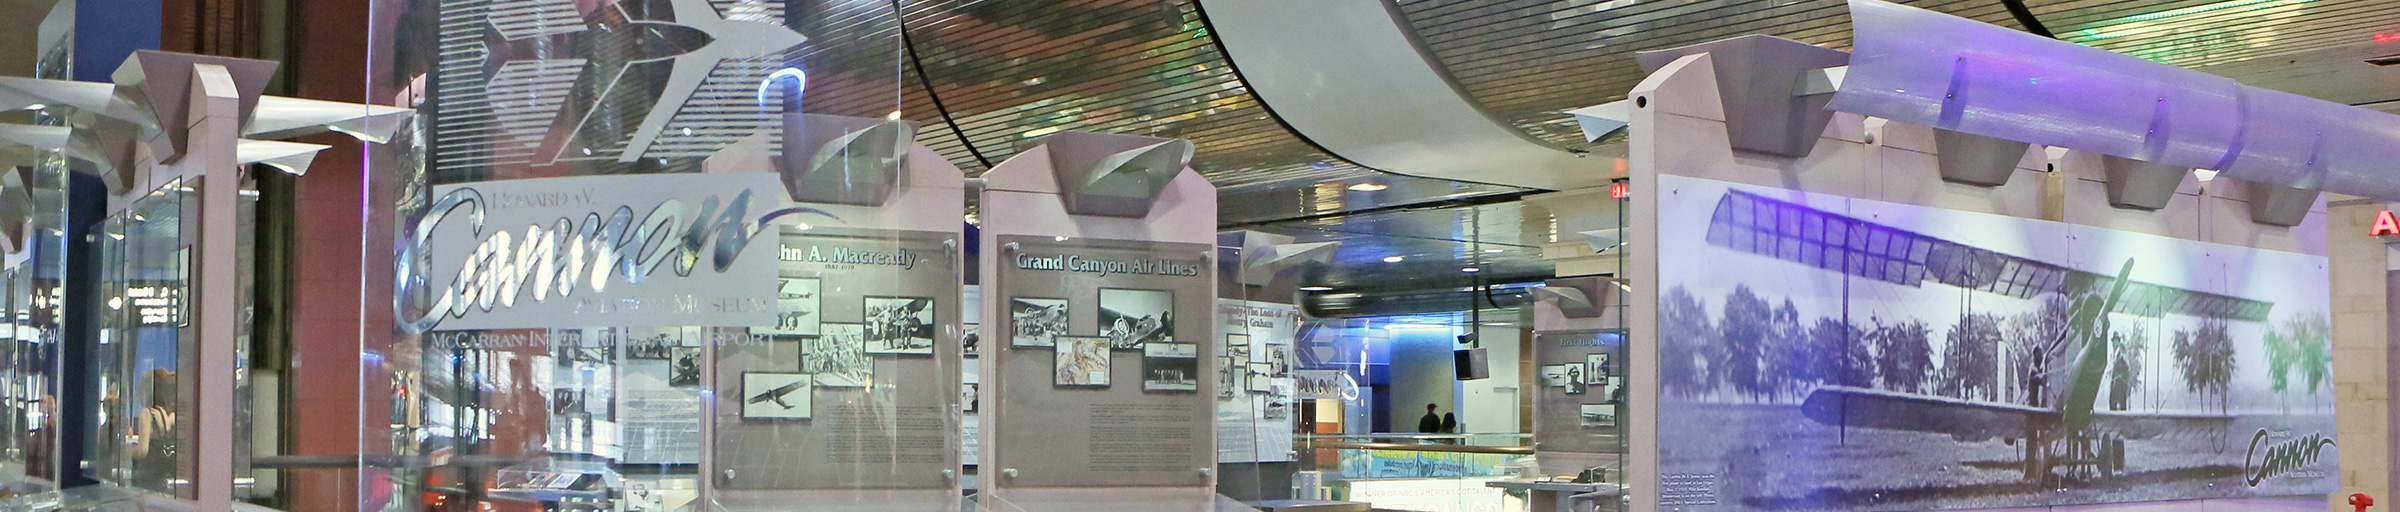 Aviation Museum at McCarran